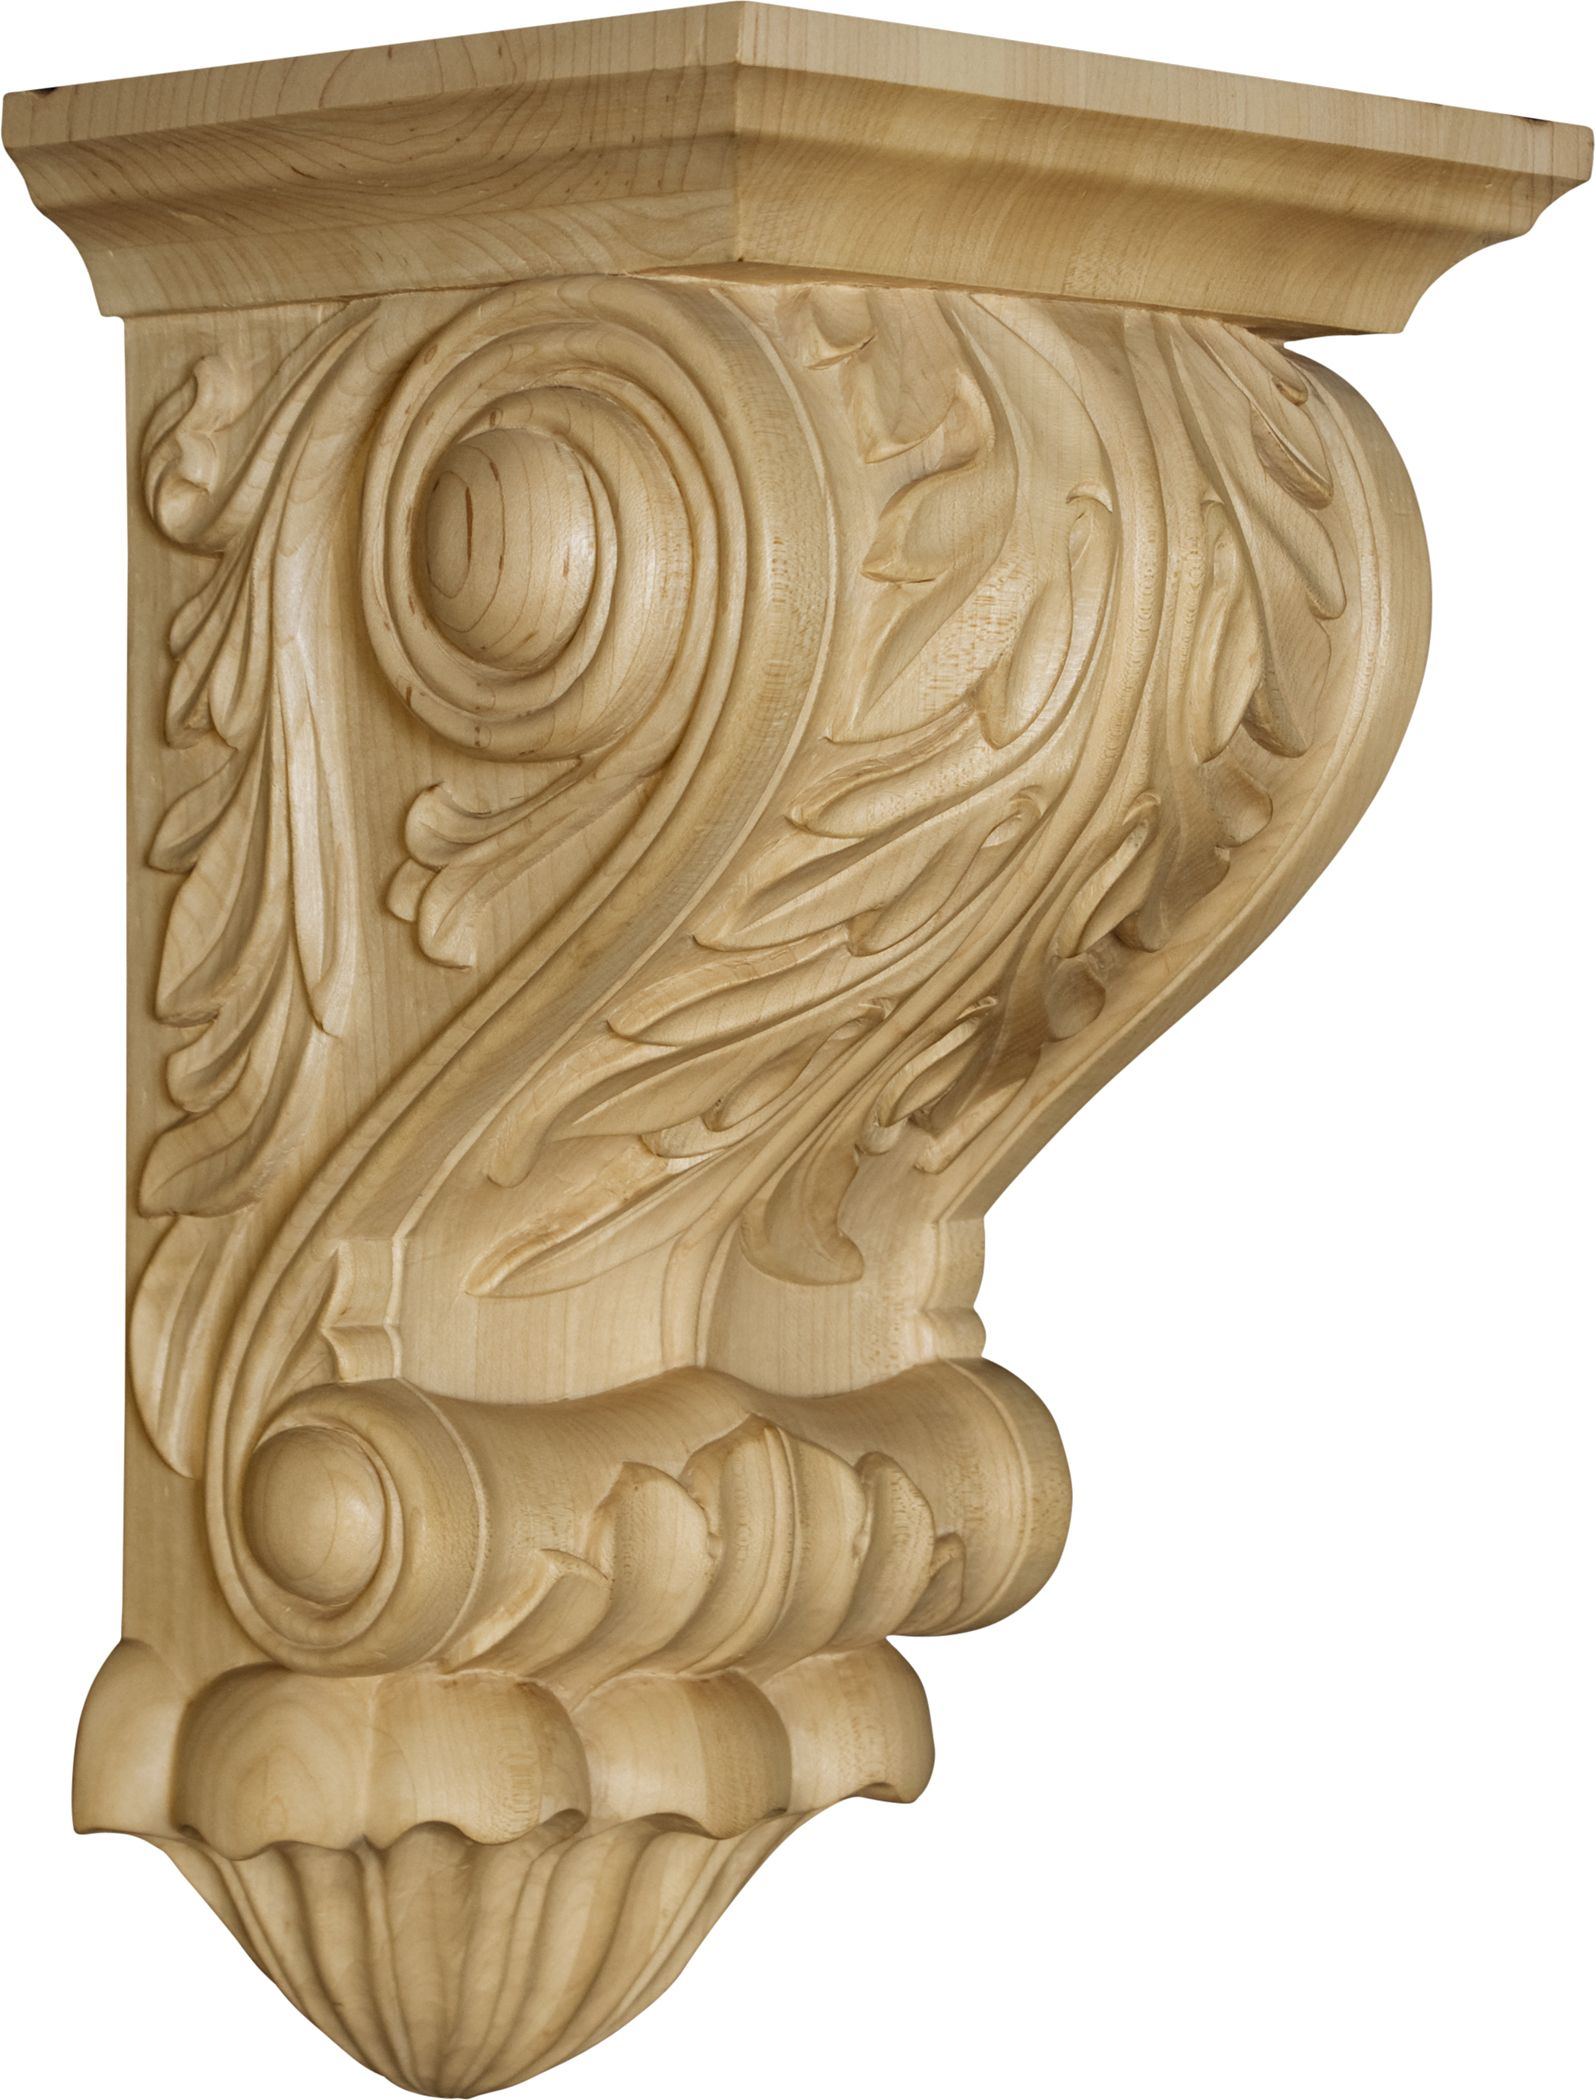 What Is A Corbel